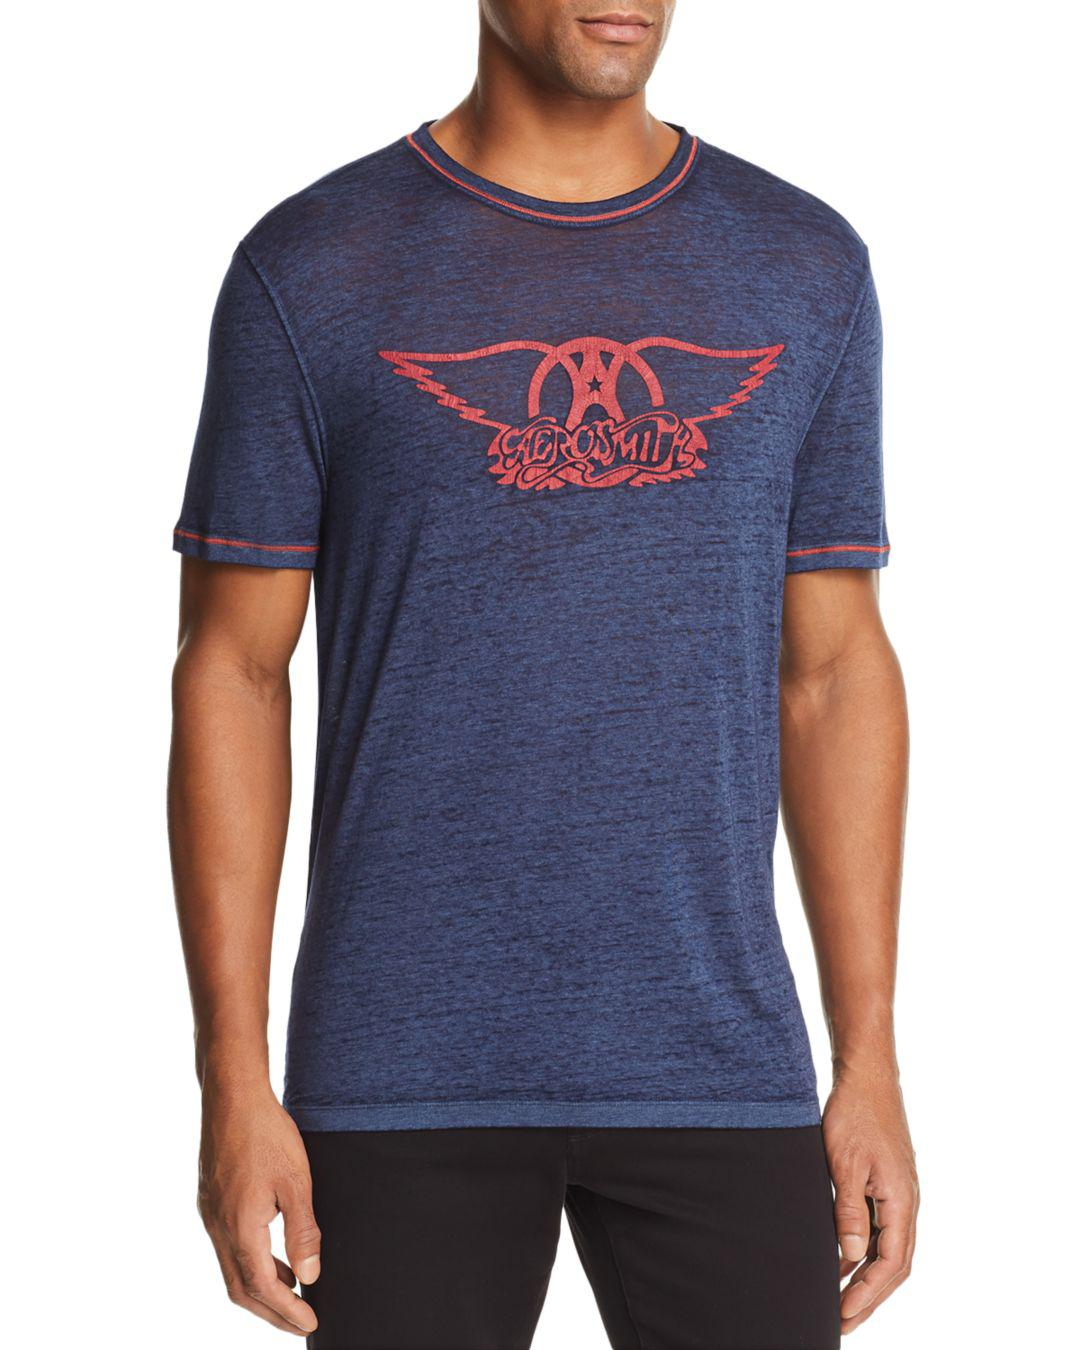 3632555b John Varvatos Aerosmith Burnout Graphic Tee in Blue for Men - Lyst